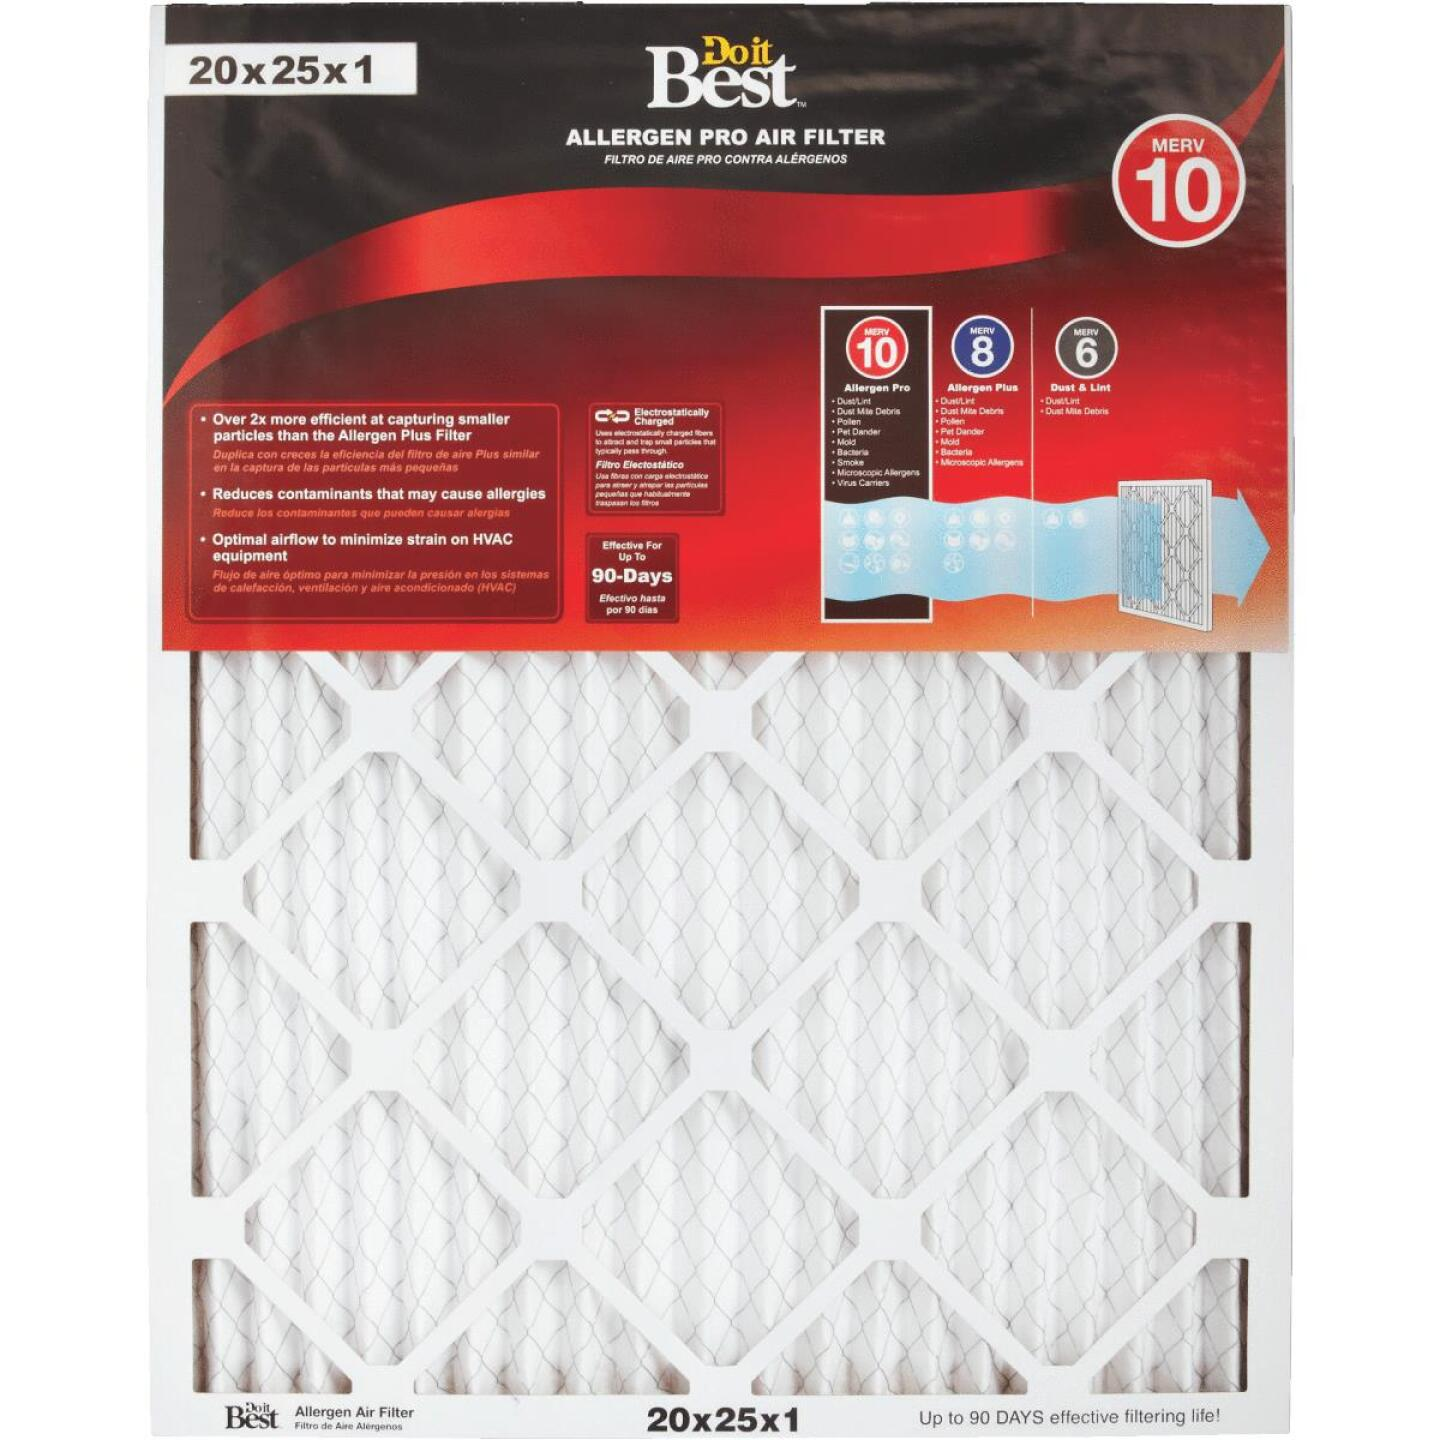 Do it Best 20 In. x 25 In. x 1 In. Allergen Pro MERV 10 Furnace Filter Image 1